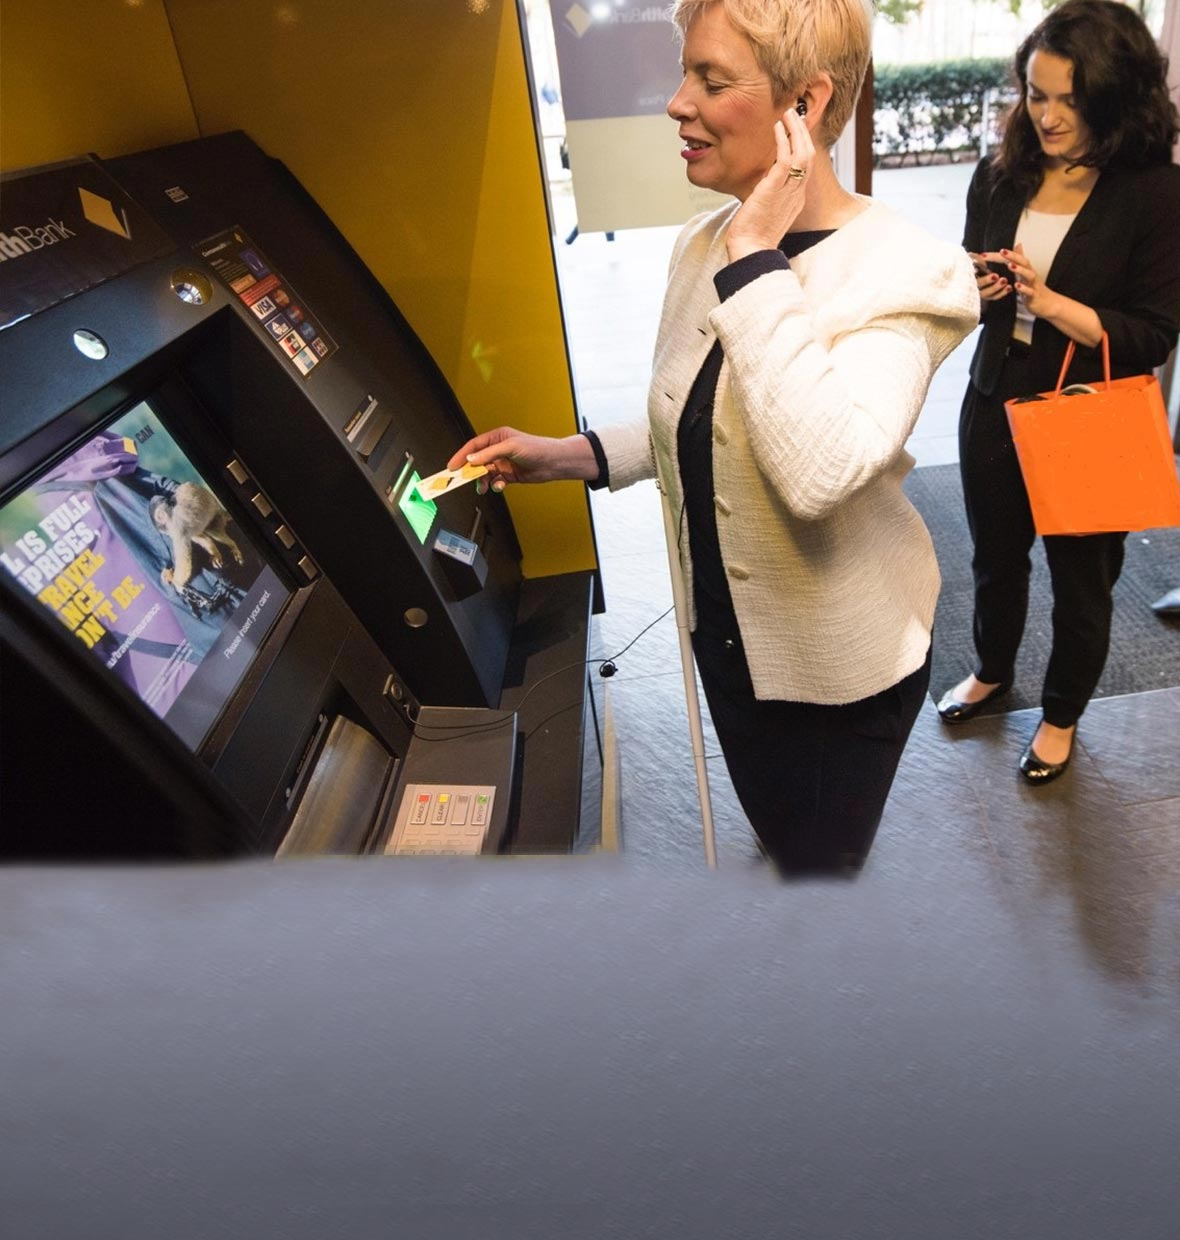 Madison : Commonwealth bank atm close to me